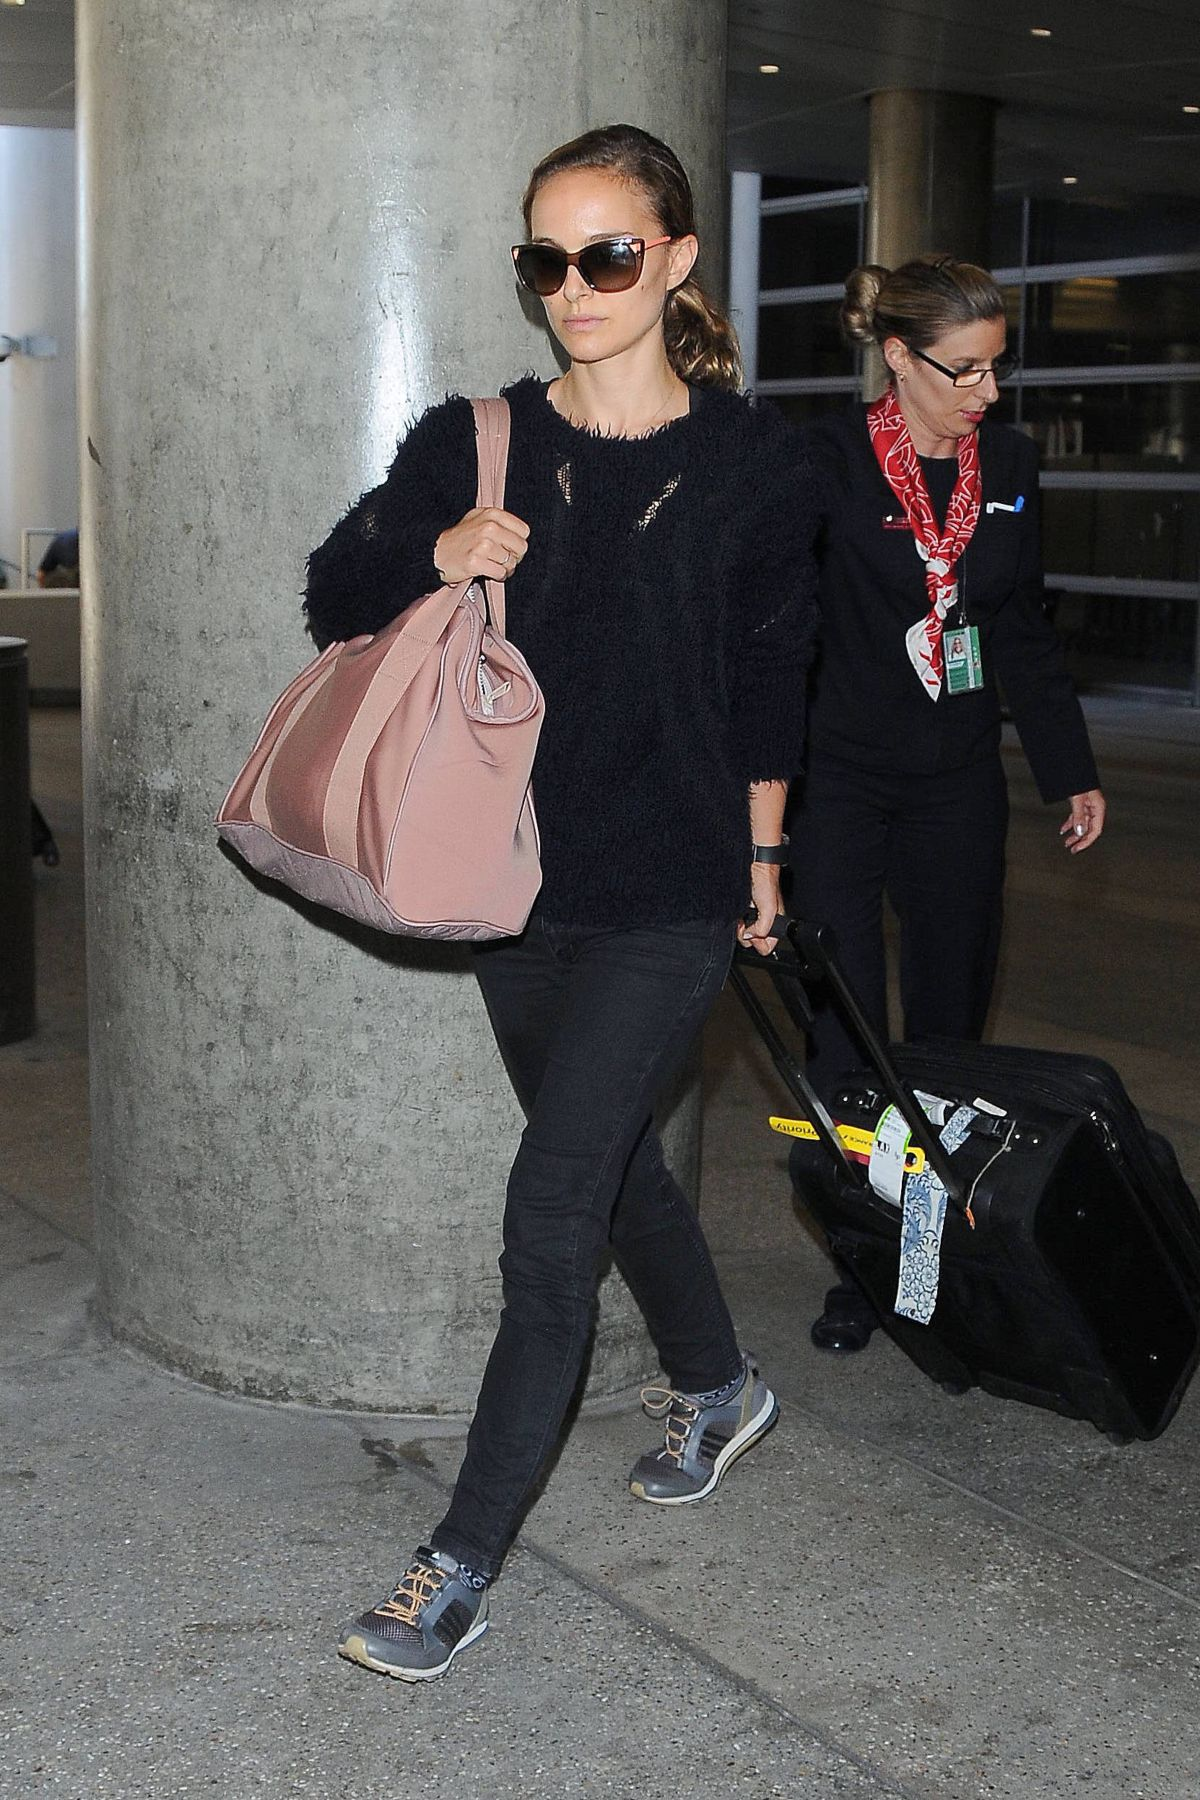 NATALIE PORTMAN Arrives at LAX Airport in Los Angeles 0909